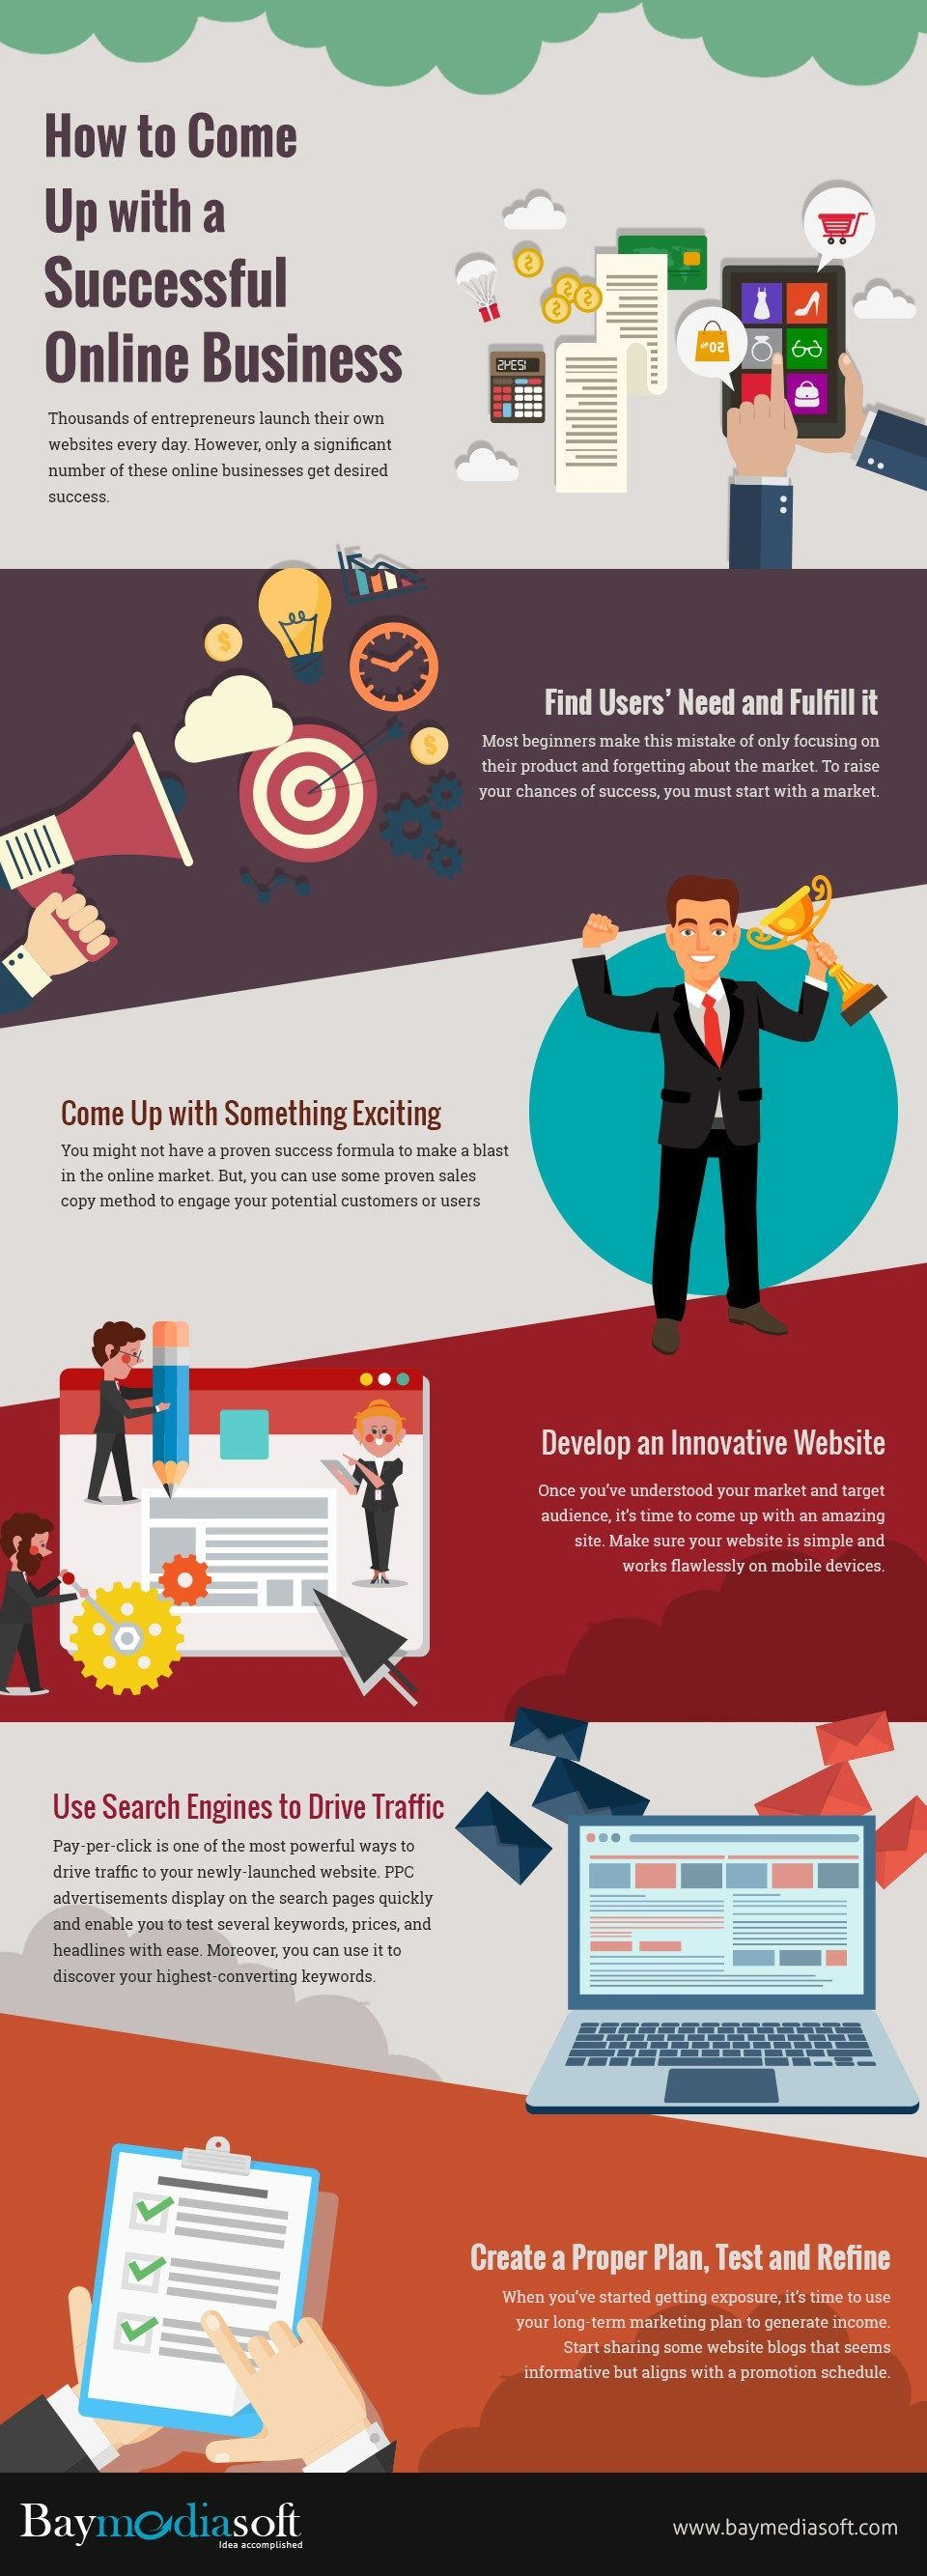 How To Come Up With A Successful Online Business Infographic